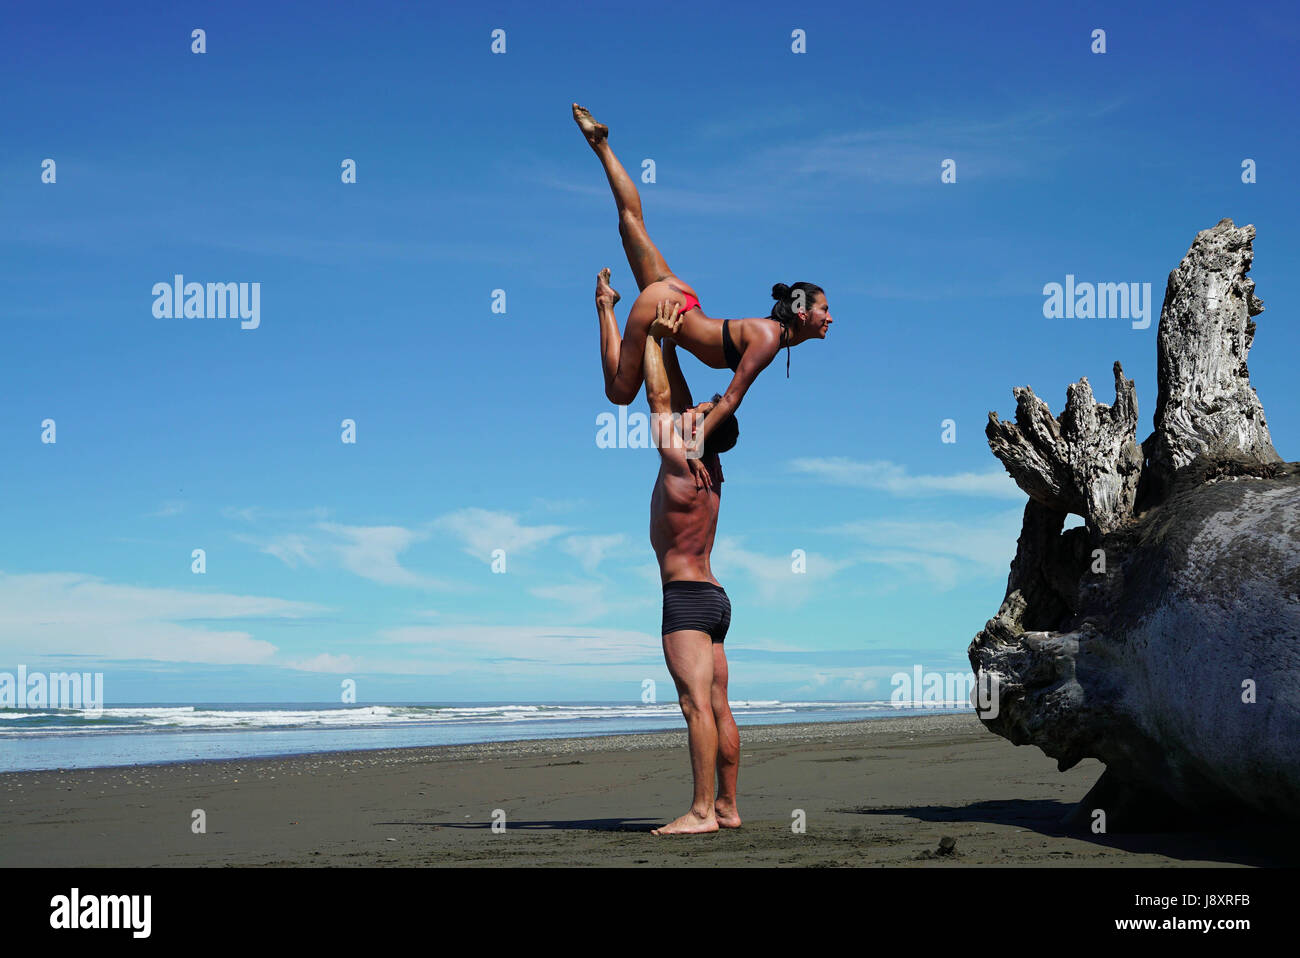 STUNNING photographs and video have revealed one couple's incredible bond as they combine their passions for yoga - Stock Image